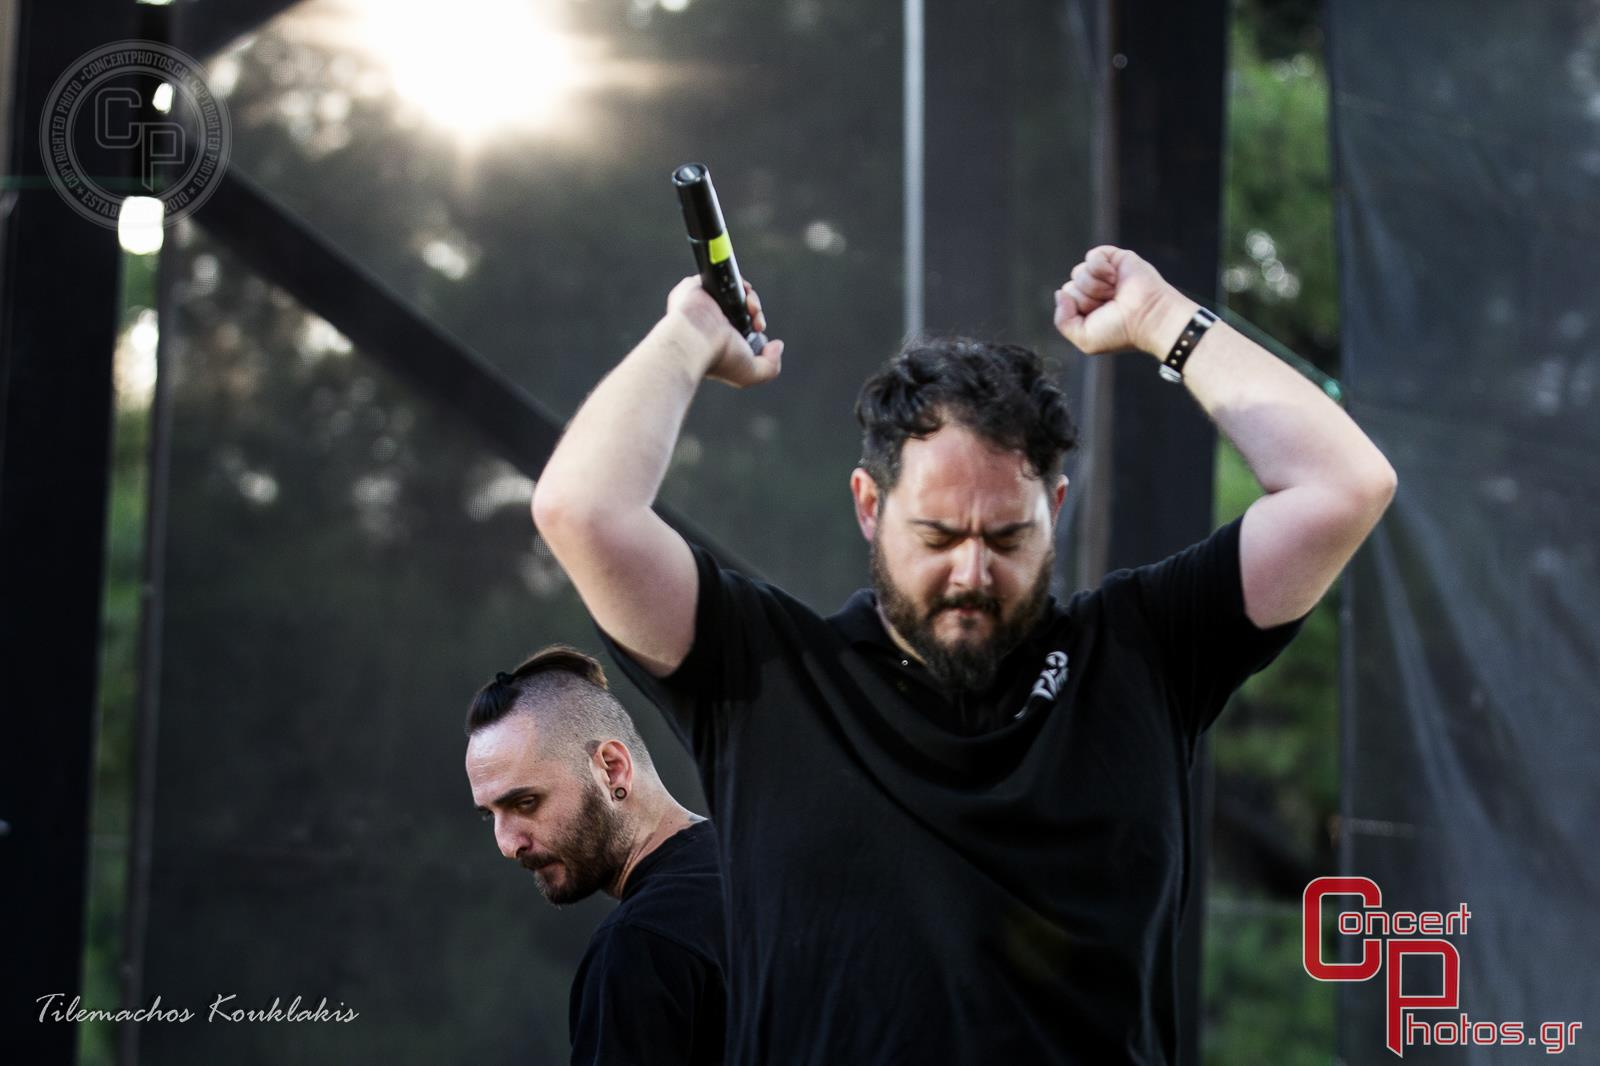 Rockwave 2014-Rockwave 2014 - Day 1 photographer:  - Rockwave-2014-49